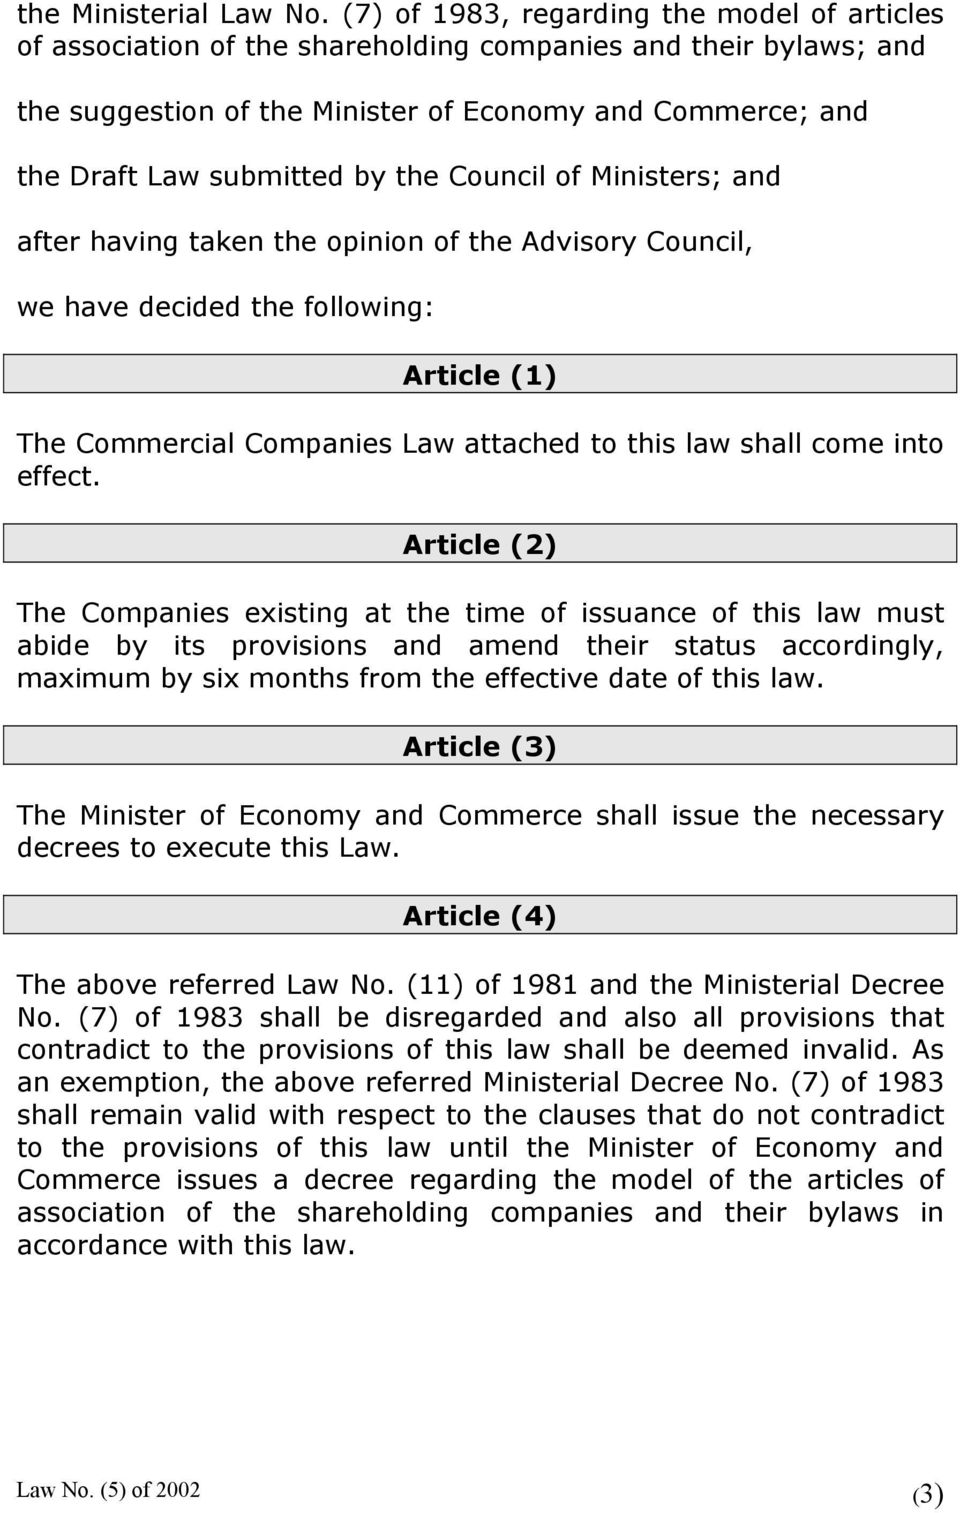 the Council of Ministers; and after having taken the opinion of the Advisory Council, we have decided the following: Article (1) The Commercial Companies Law attached to this law shall come into